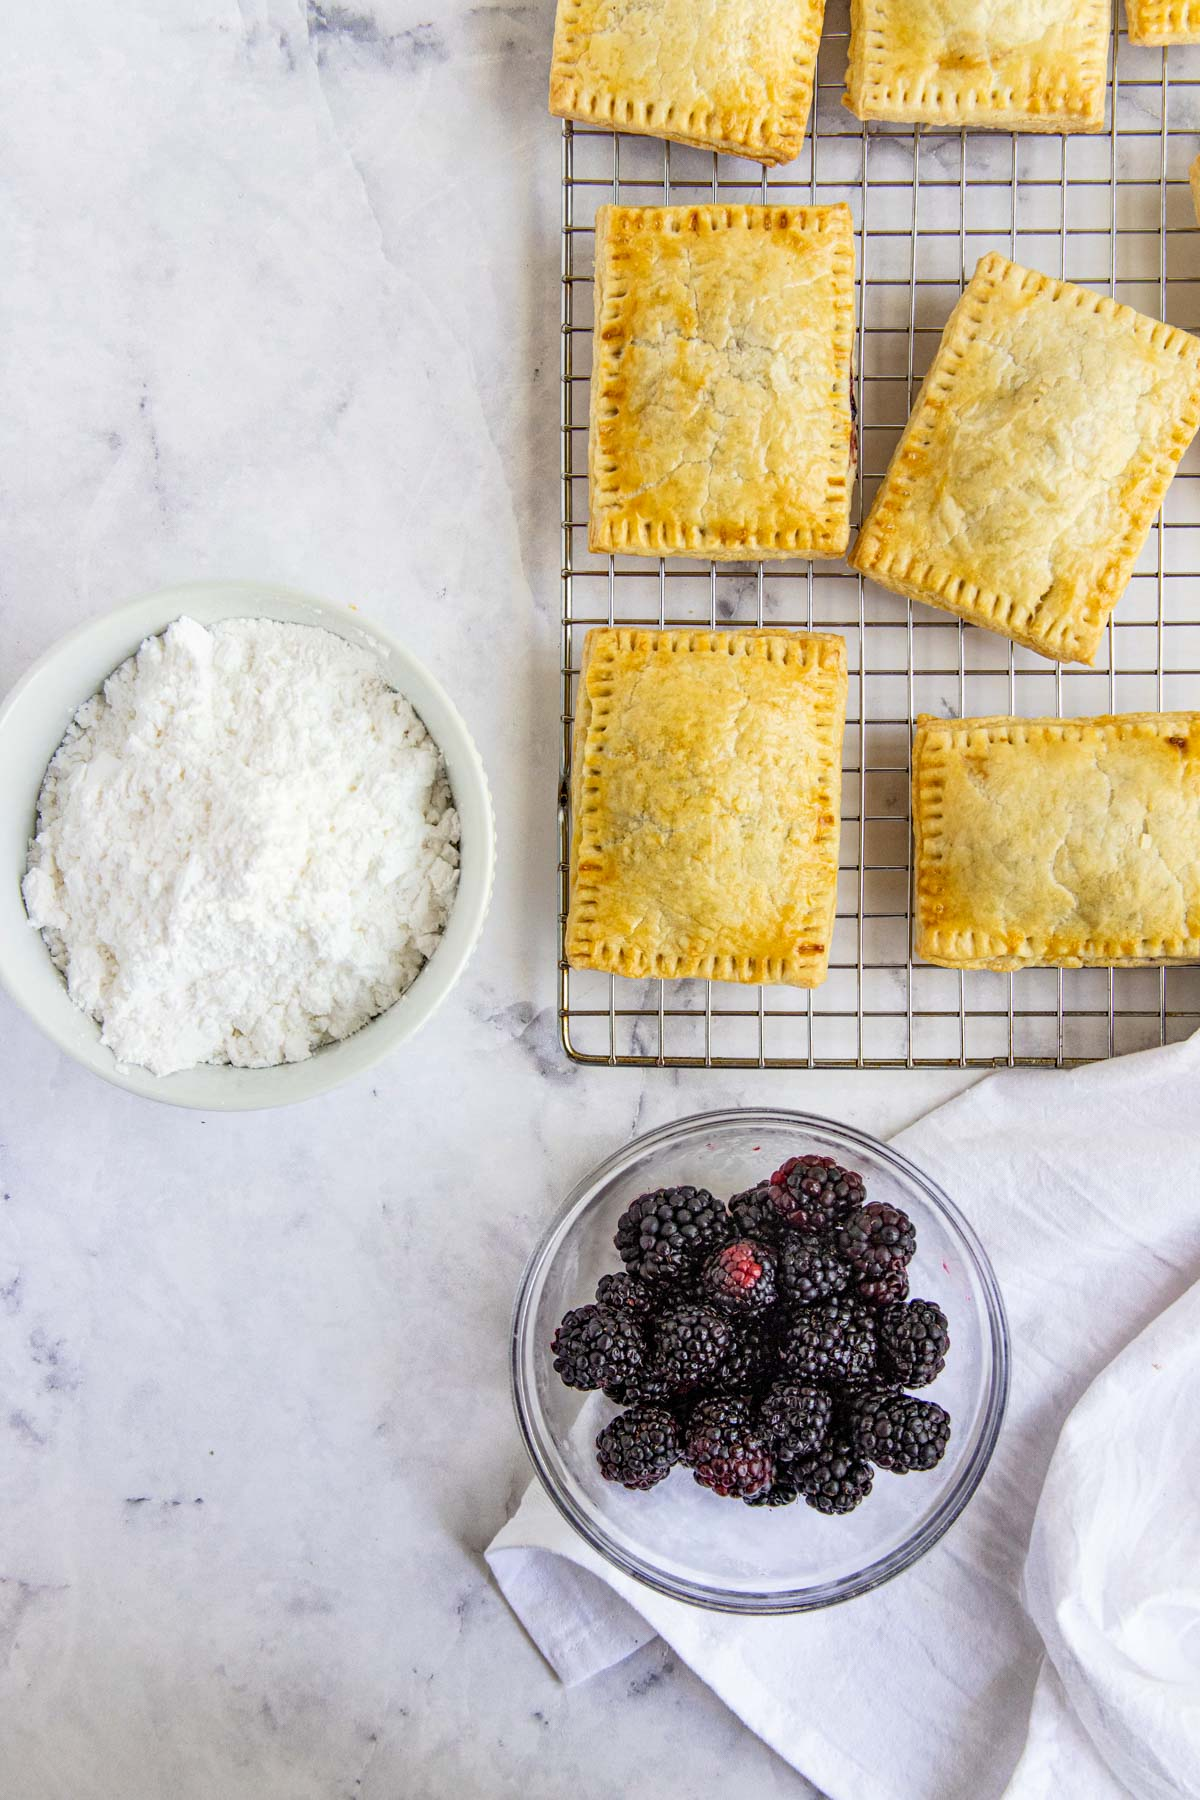 Baked blackberry hand pies  on a cooling rack with bowls of powdered sugar and fresh raspberries next to the pies.